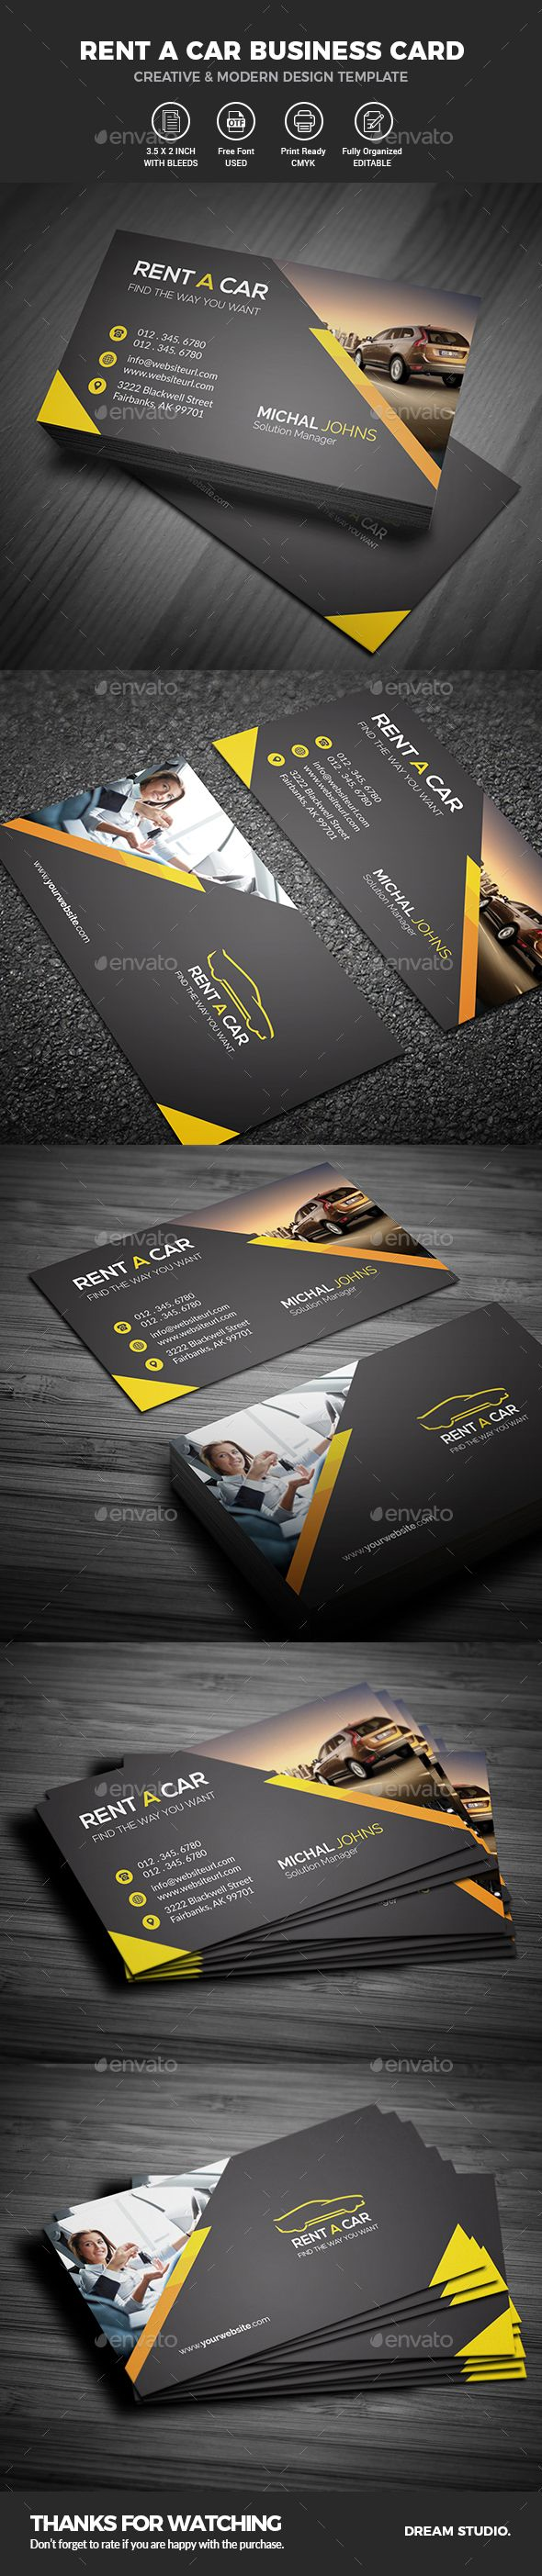 9360 best business card design images on pinterest advertising rent a car business card business cards print templates download here https magicingreecefo Images